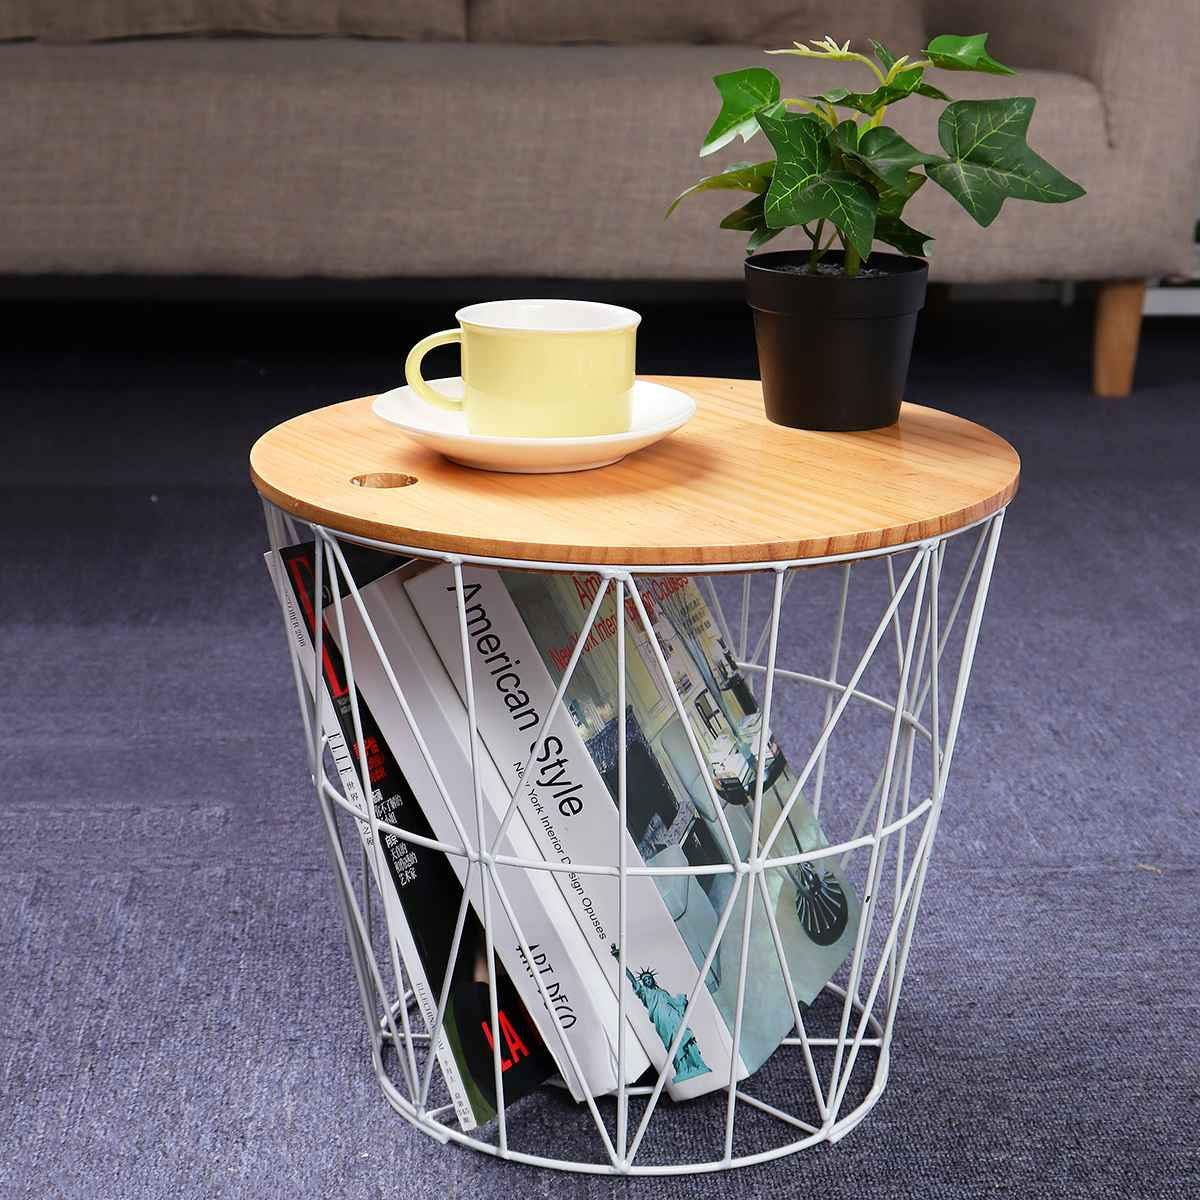 Indian Decor 302500 Coffee Table With Storage Wire Basket With Wooden Top White Amazon In Home Kitchen